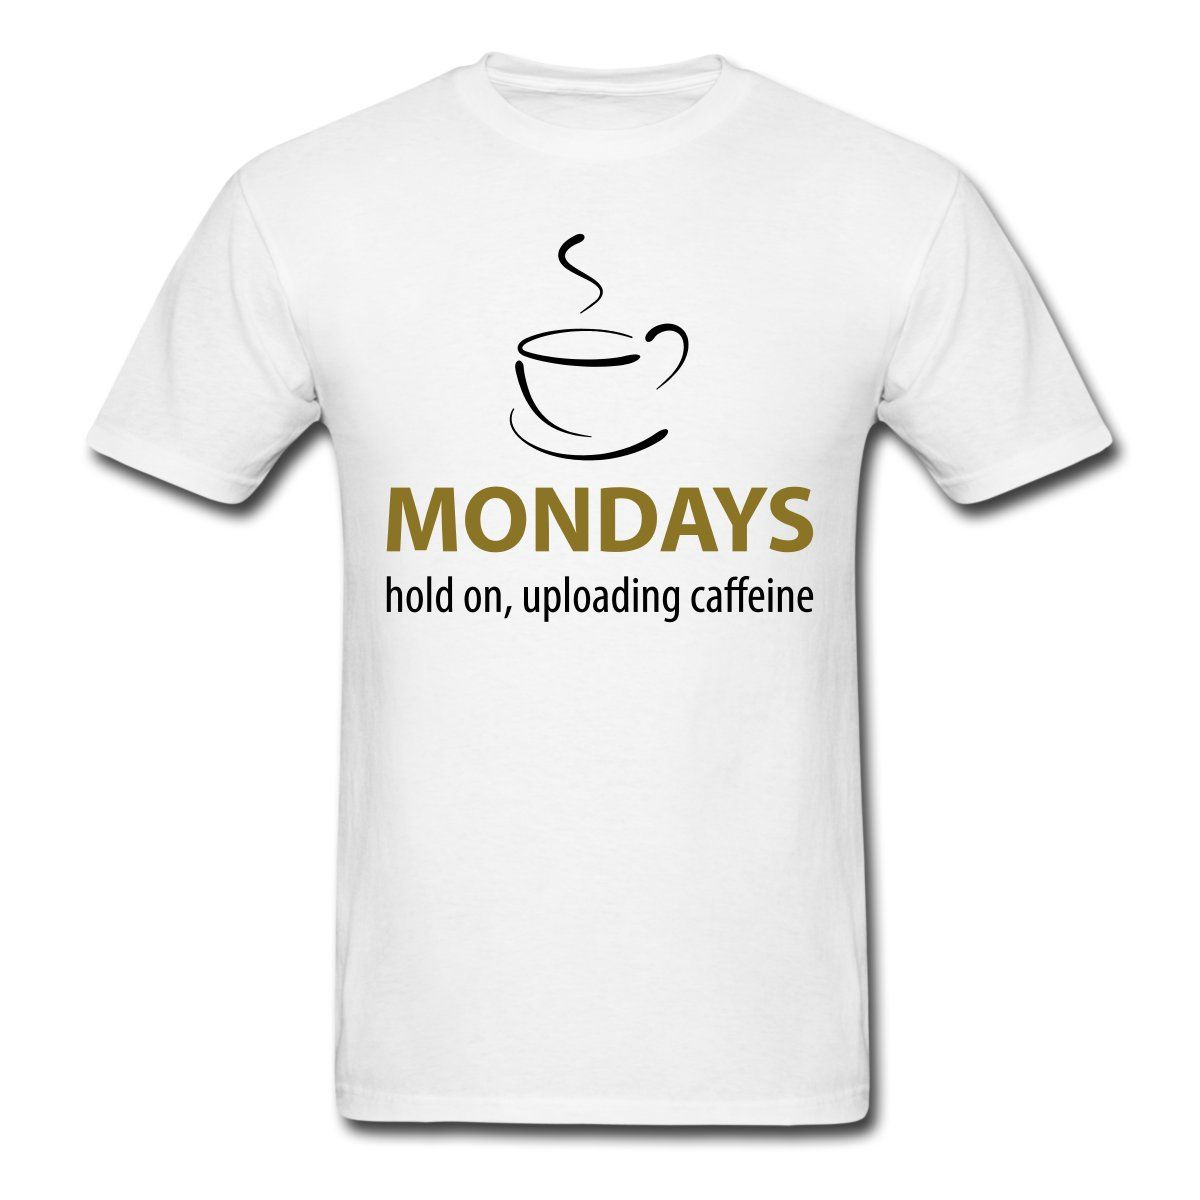 #coffee #tea #bed #sleeping #tired #nap napping #caffeine #funny #phrase #saying #quote #spreadshirt #djbdesign #tee #shirt #tshirt #apparel #clothing #design #designs